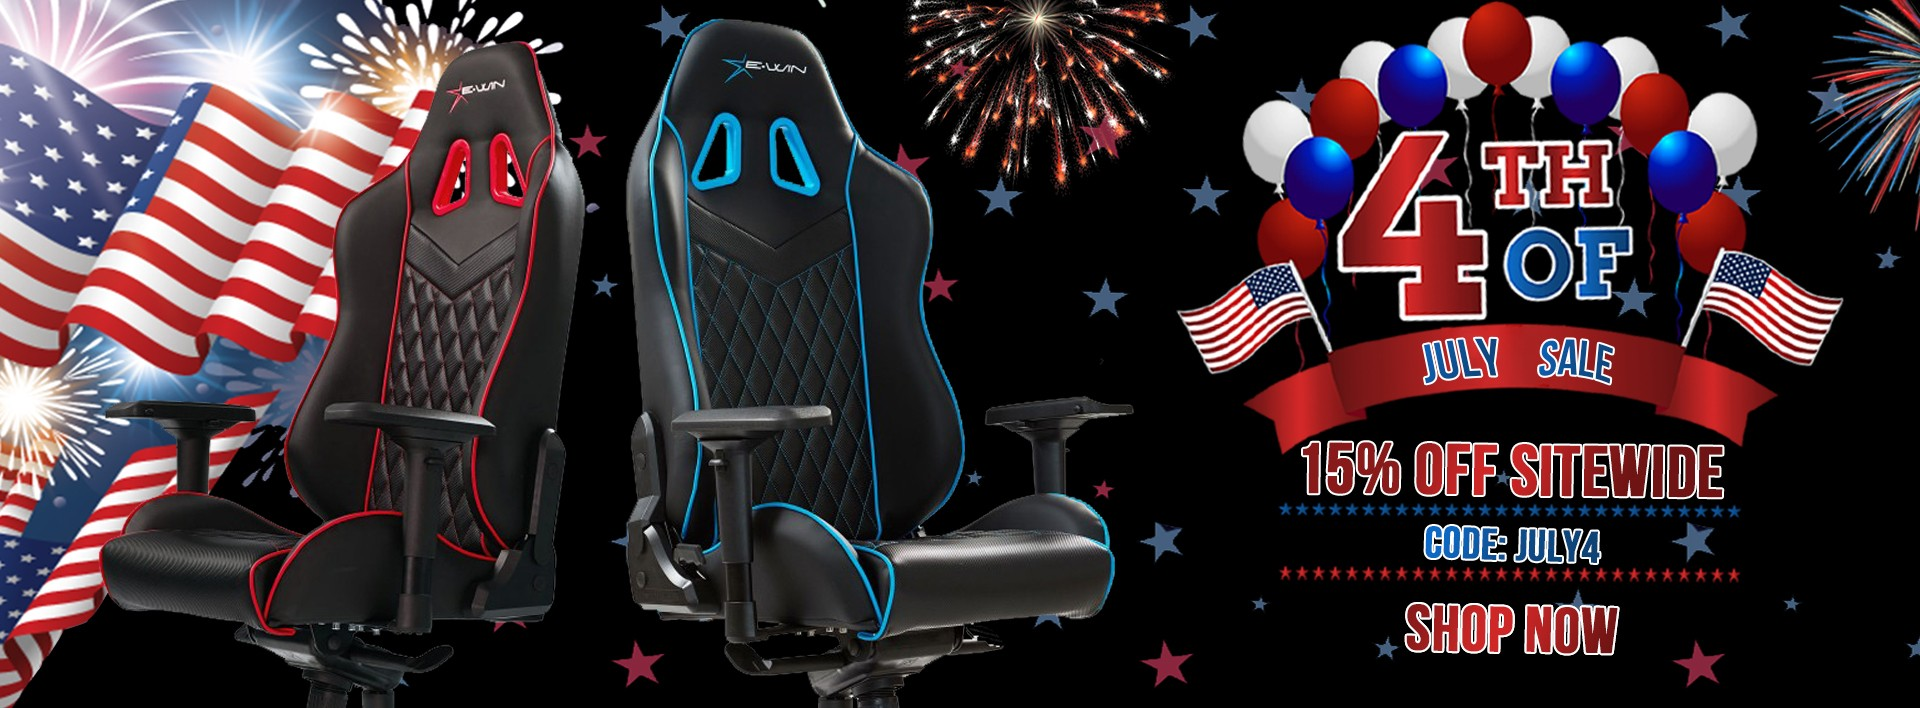 2020 4th of July Sale